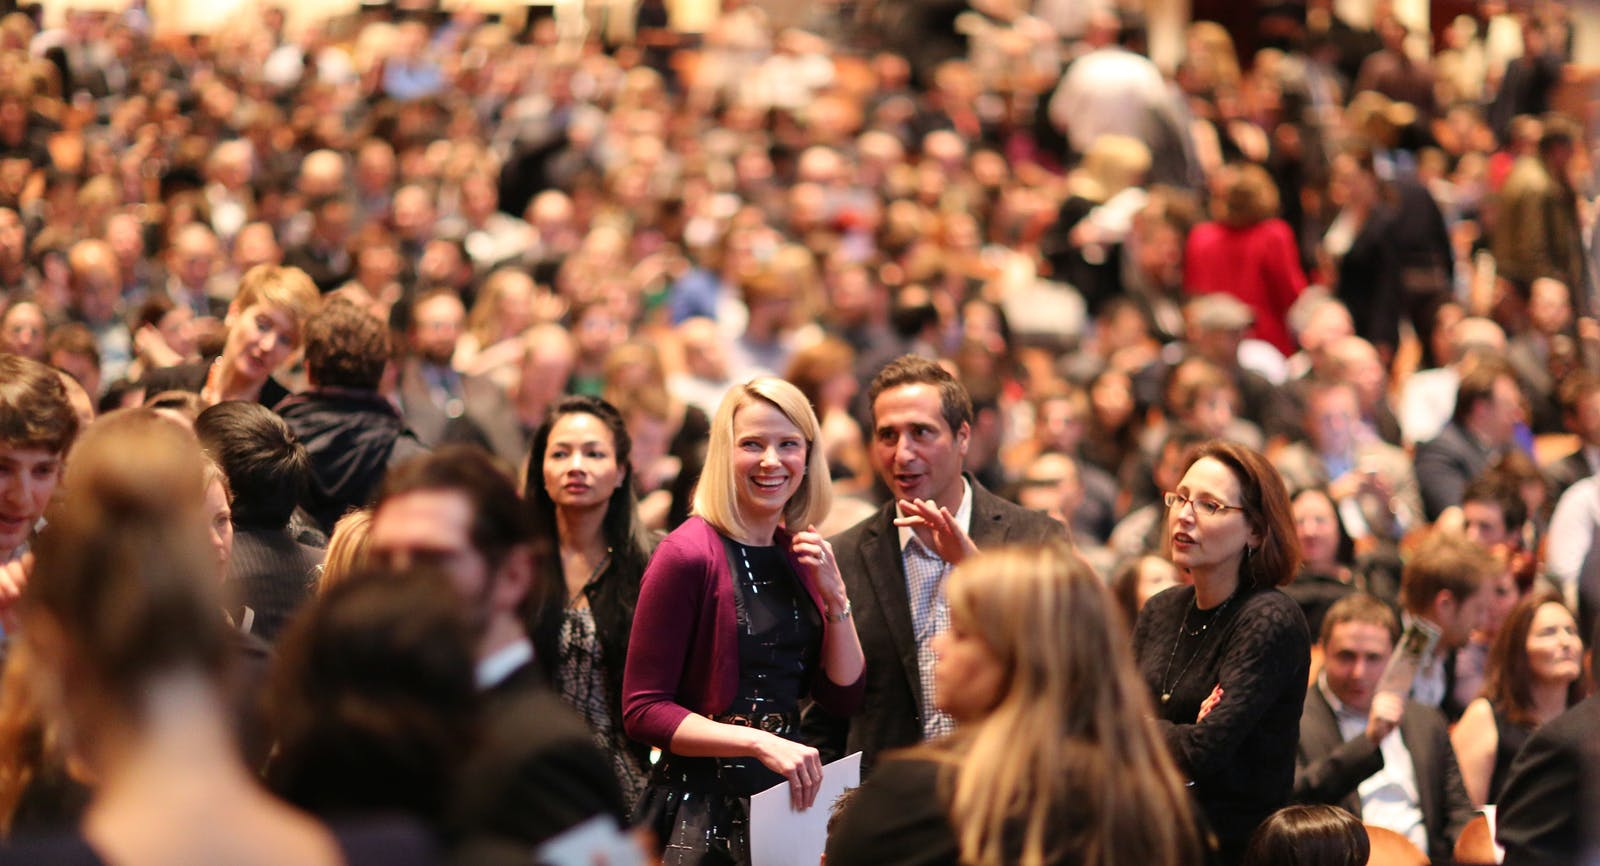 Marissa Mayer, CEO of Yahoo, with colleagues earlier this year. Photo by Max Morse.